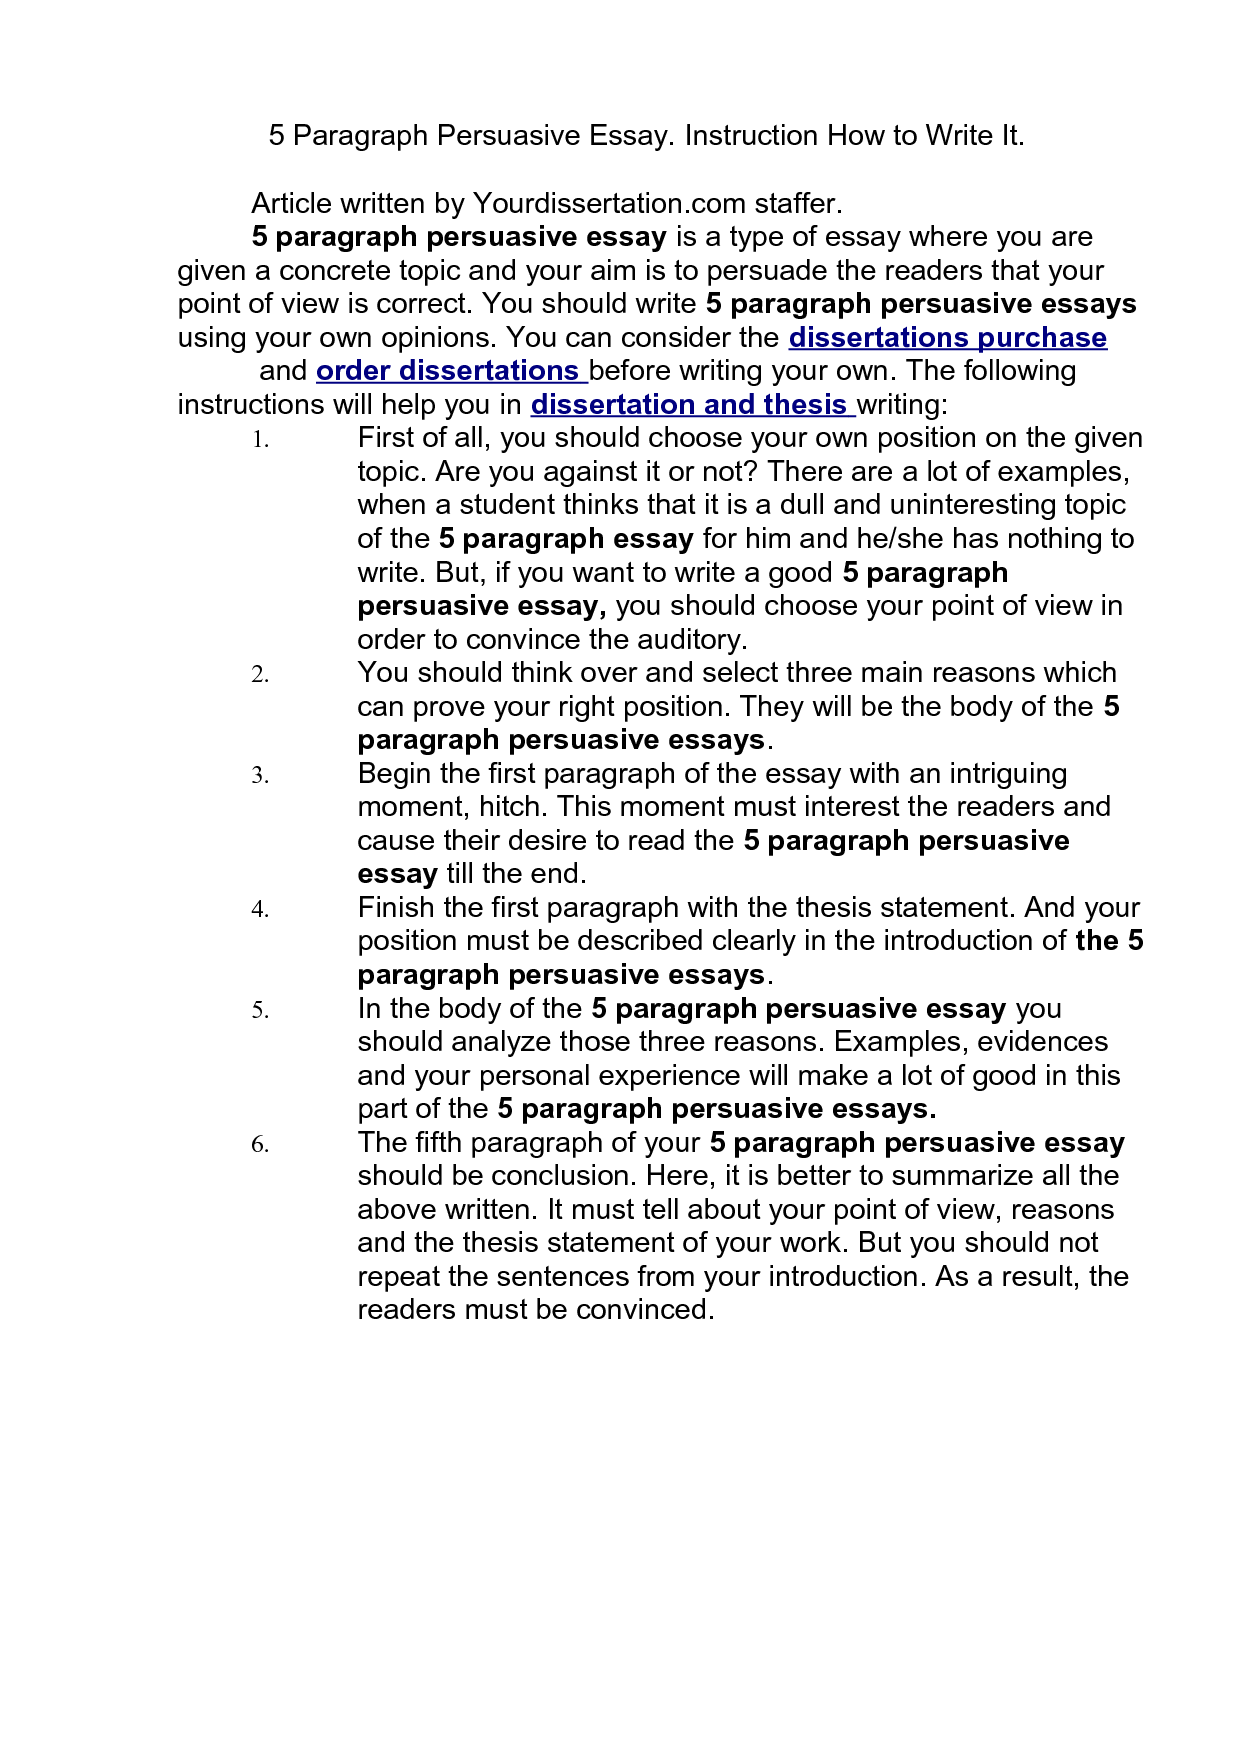 5 paragraph essay example on quotes - Format Of A 5 Paragraph Essay